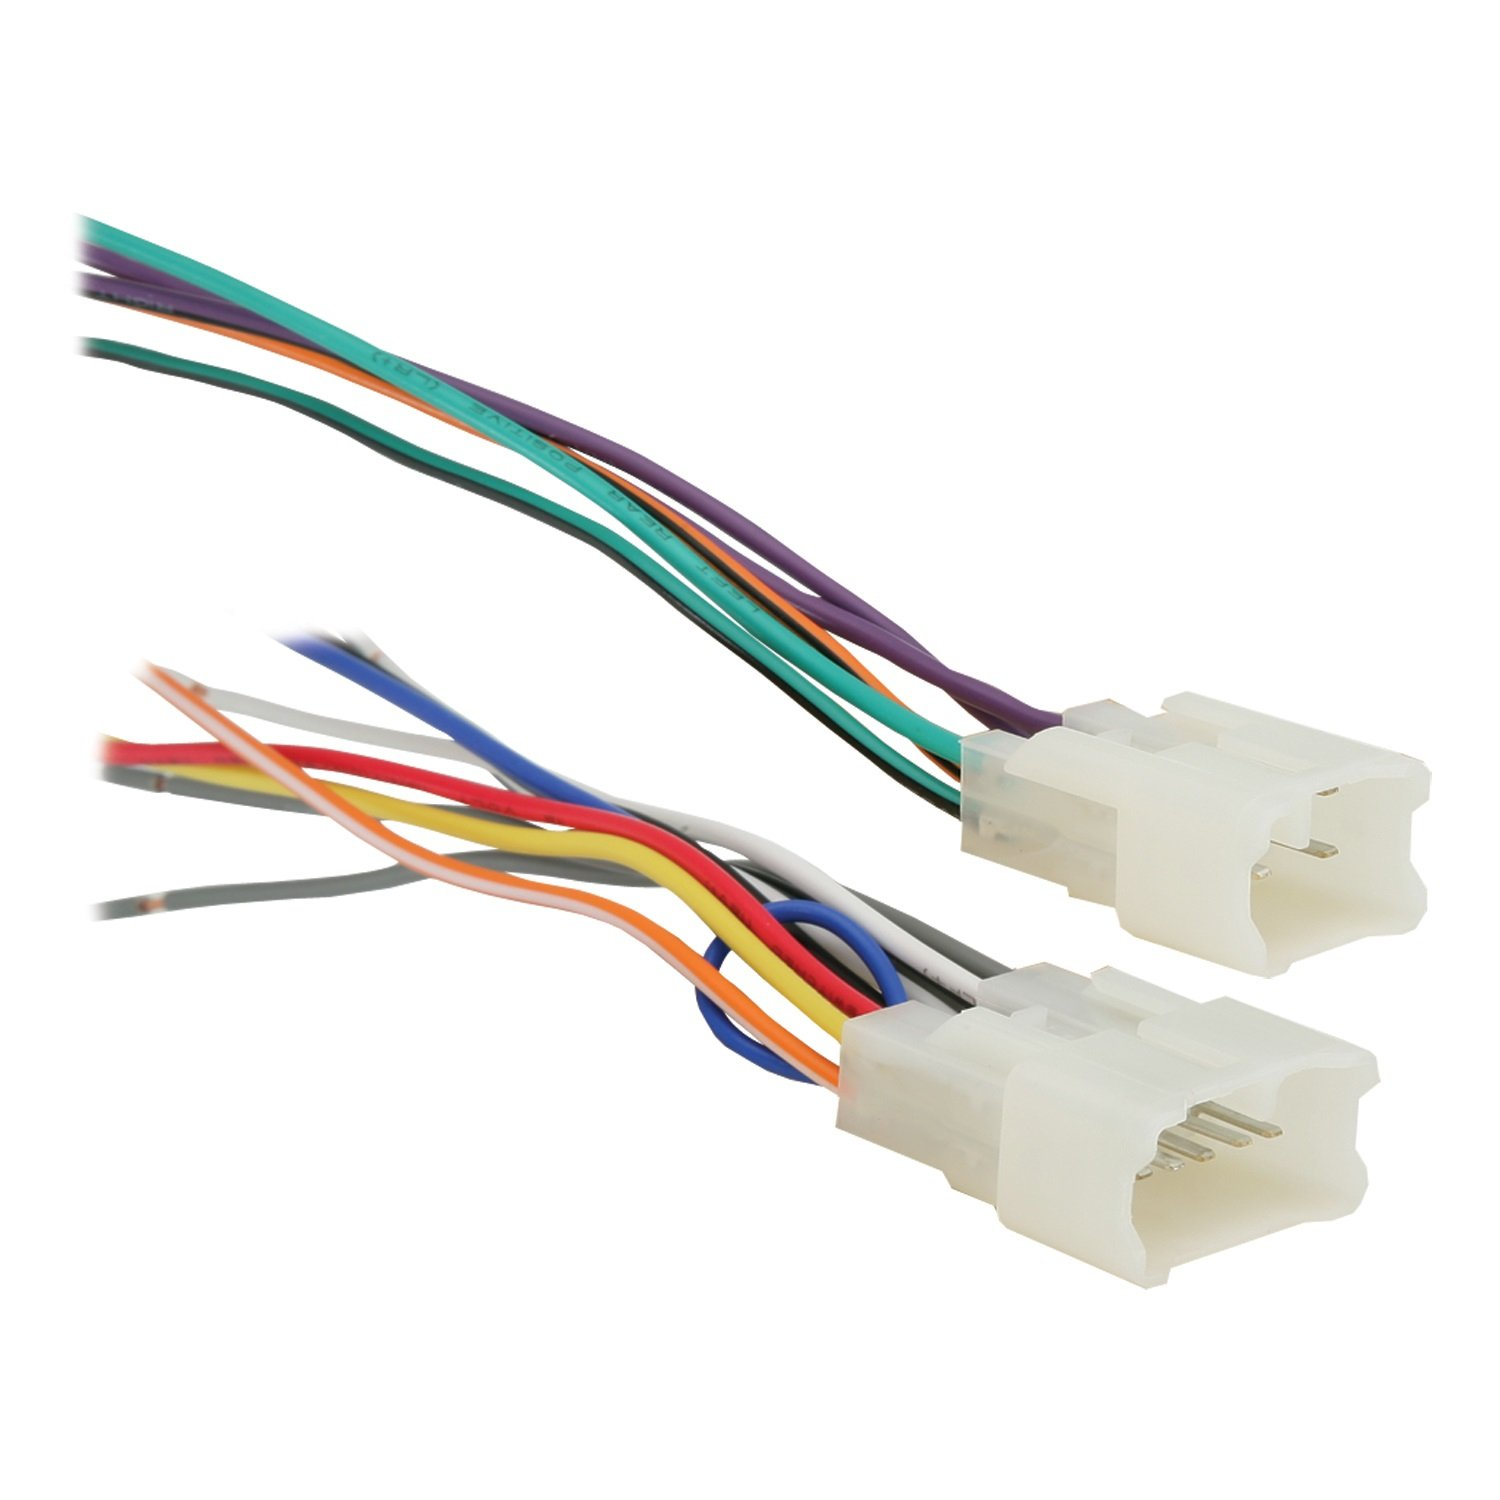 61ifTKeRTLL._SL1500_ amazon com wiring harnesses electrical automotive super cheap wiring harness at bakdesigns.co